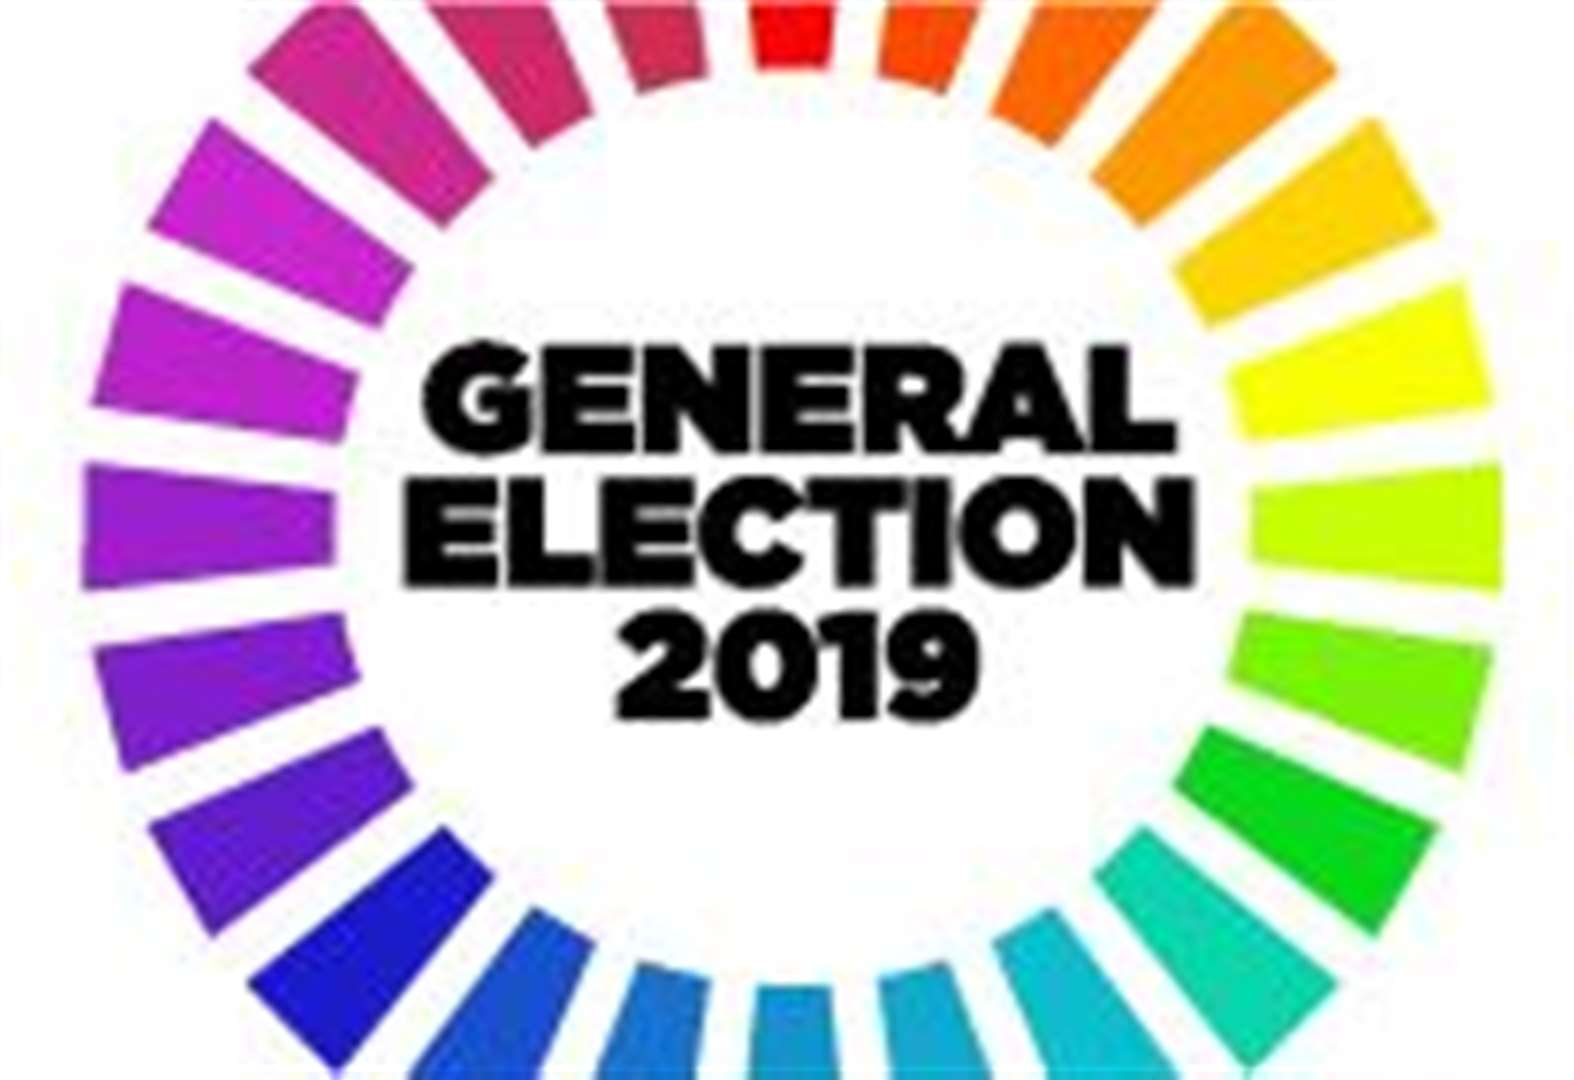 General Election 2019: Grantham and Stamford candidates' profiles